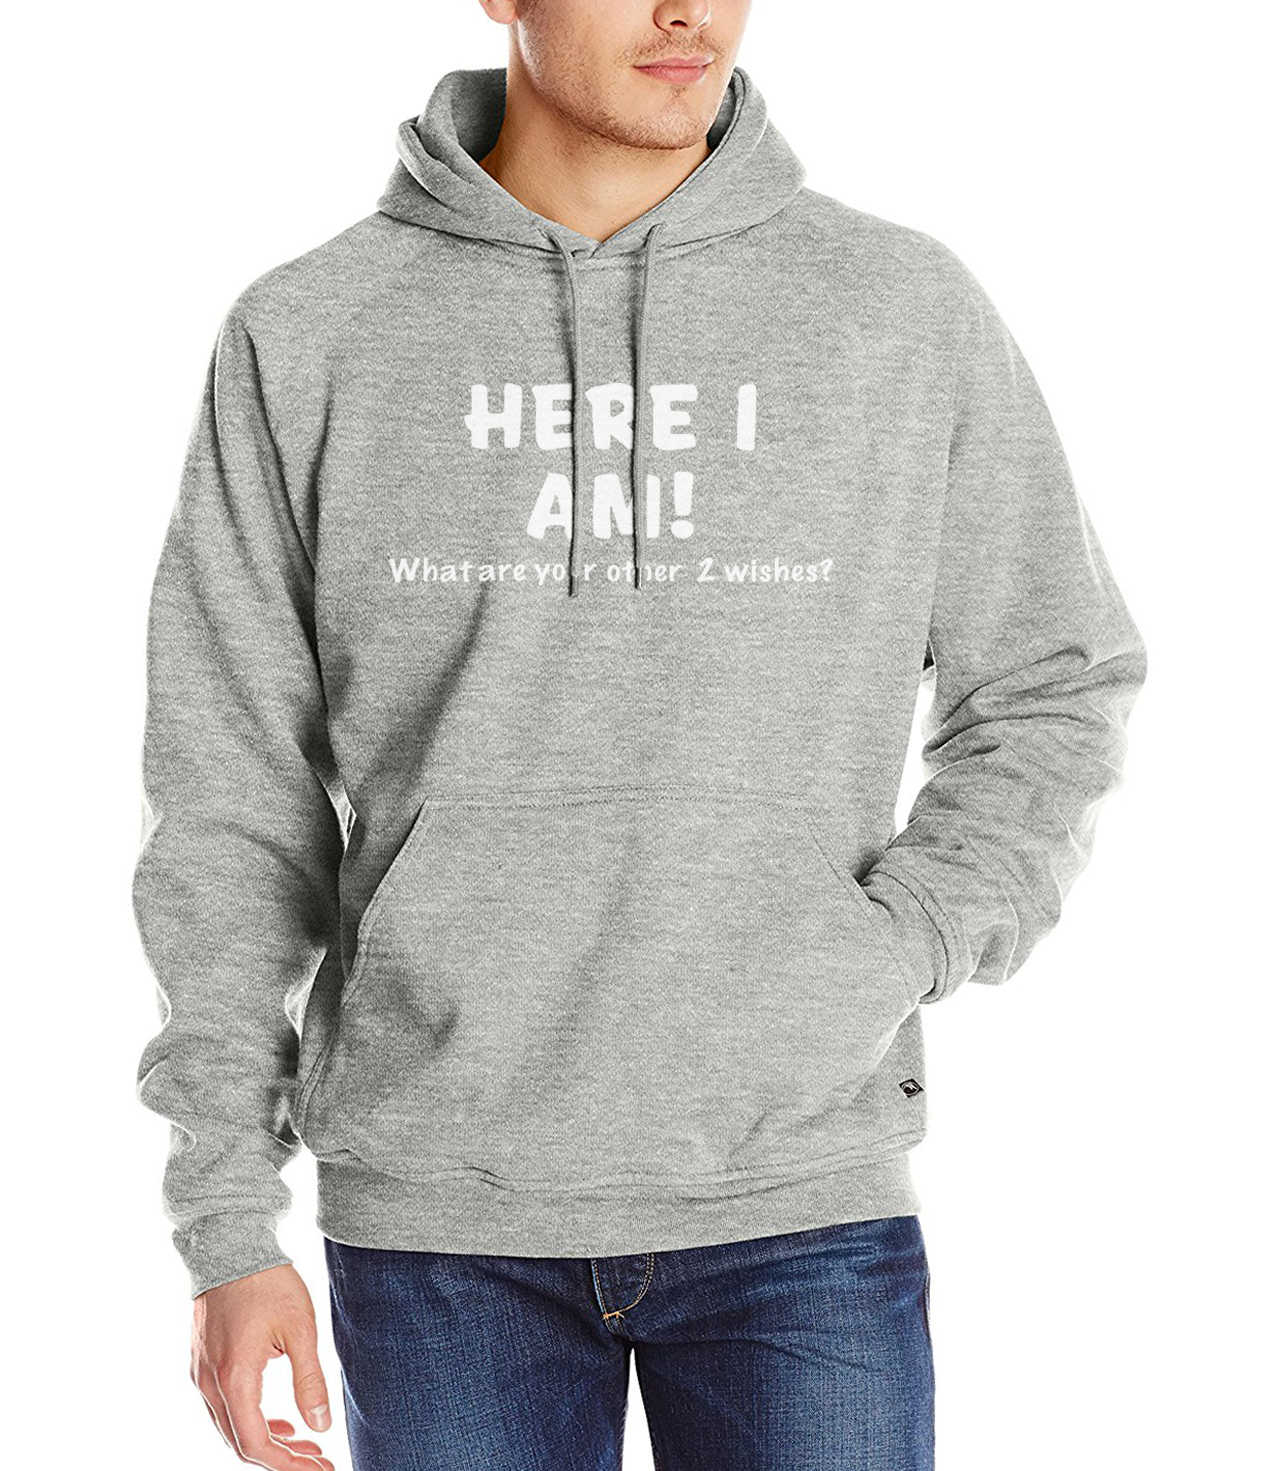 Here I Am What Are Your Other 2 Wishes 2019 men funny kpop sweatshirts autumn winter fleece casual hoodies harajuku pp tracksuit